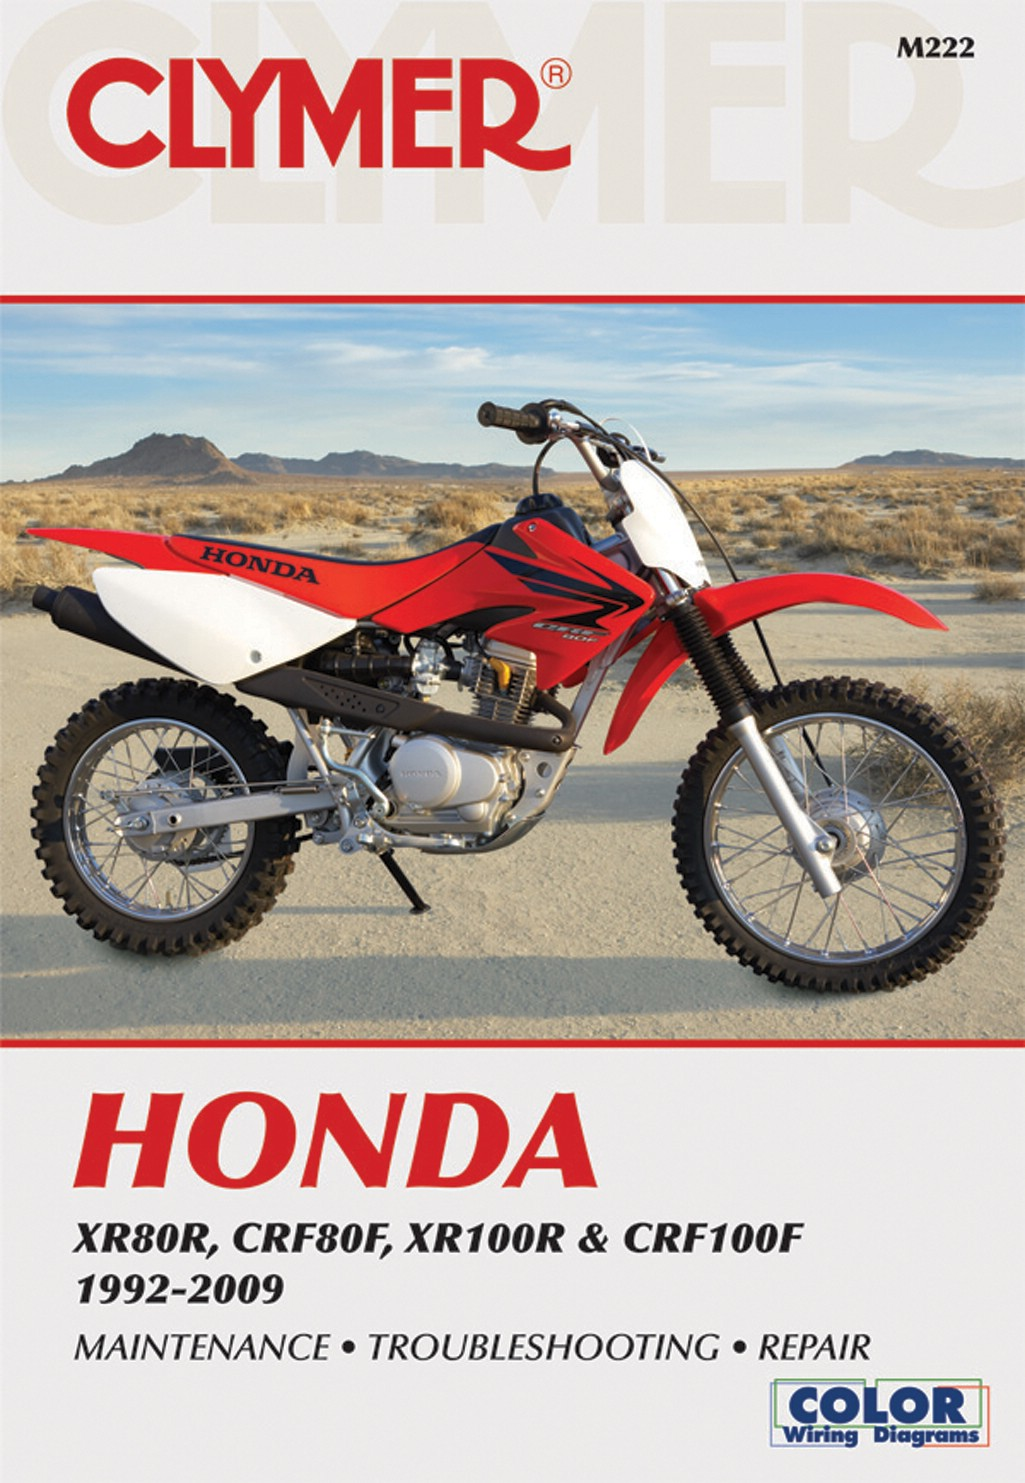 clymer manual fits honda xr80r,crf80f,xr100r & crf100f 92 09 (each honda